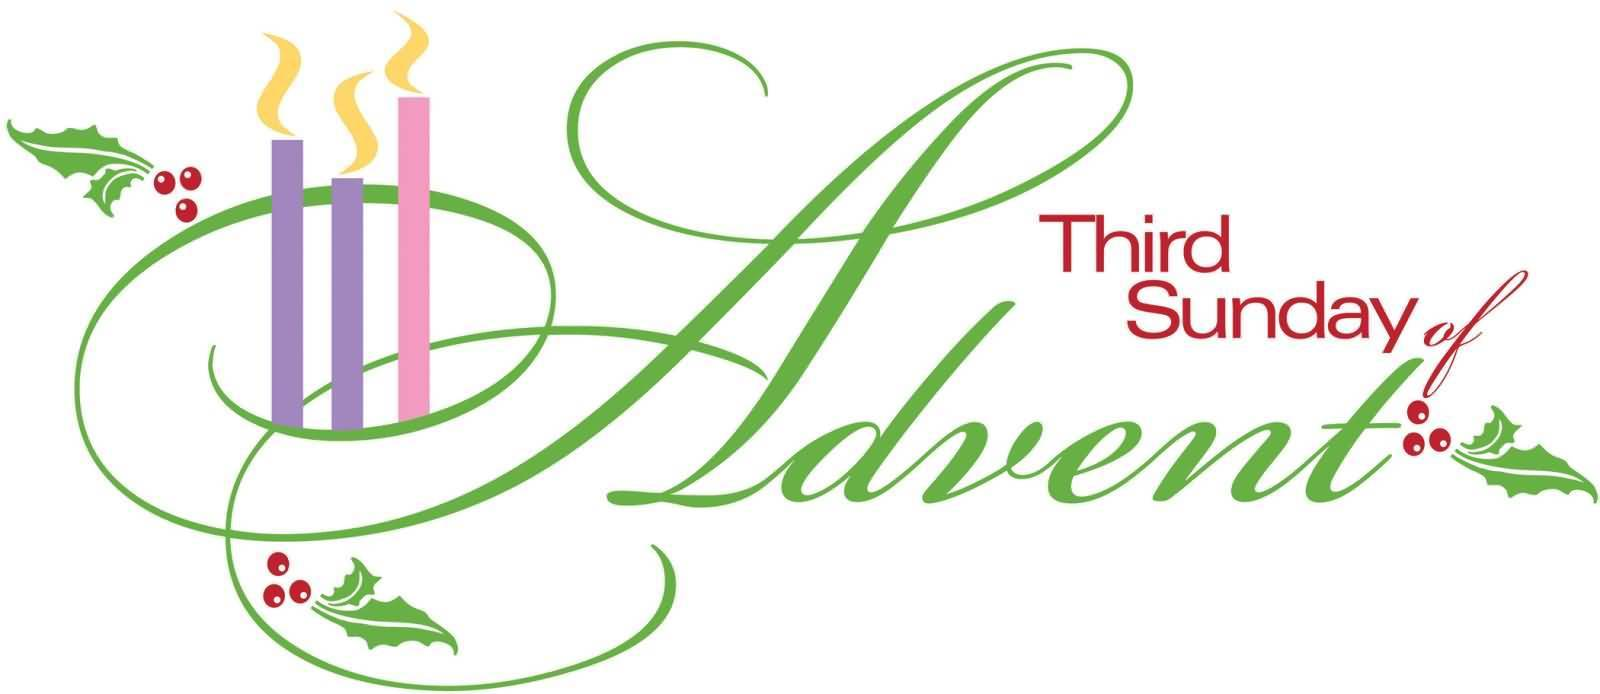 Third sunday of advent clipart 1 » Clipart Portal.